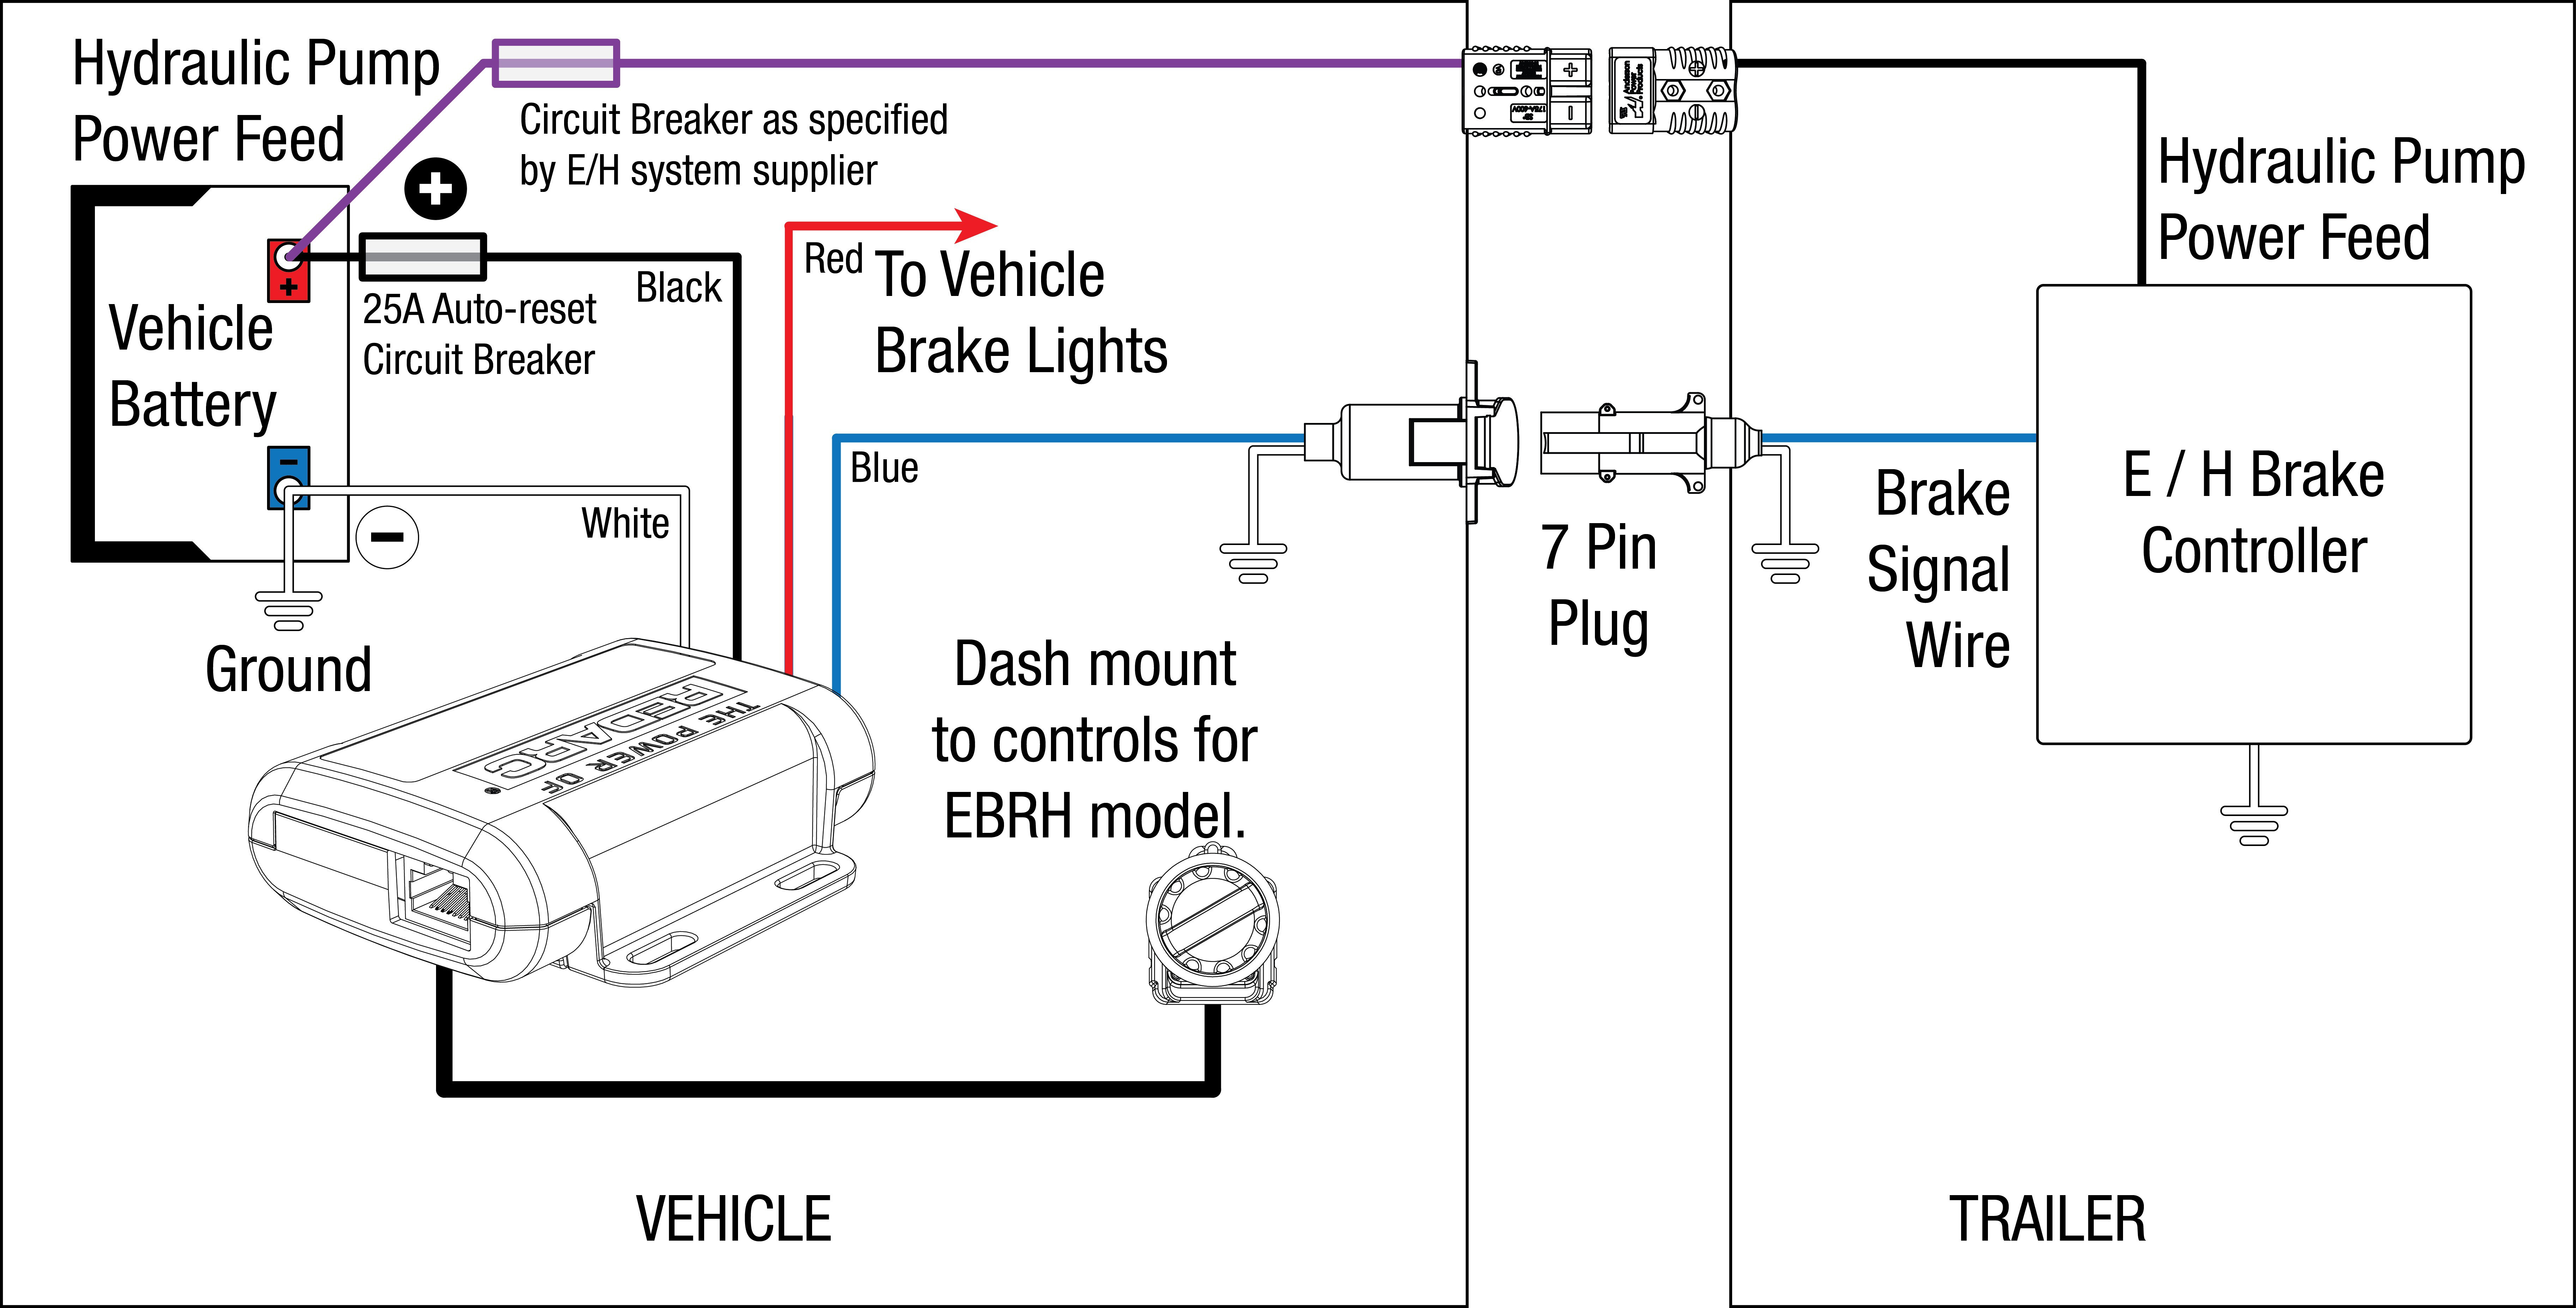 Force Controller Wiring Diagram | Wiring Library - Trailer Brake Control Wiring Diagram